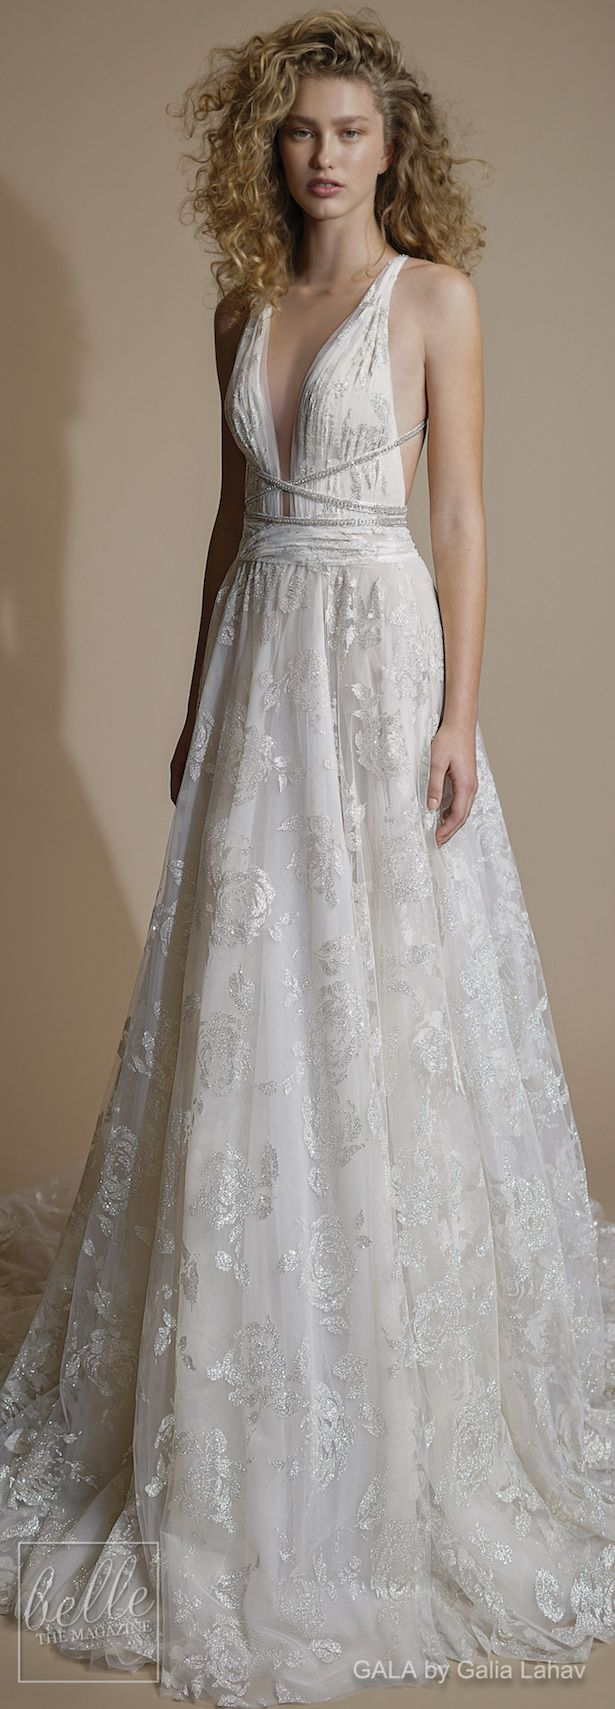 best wedding dresses ideas images on pinterest homecoming